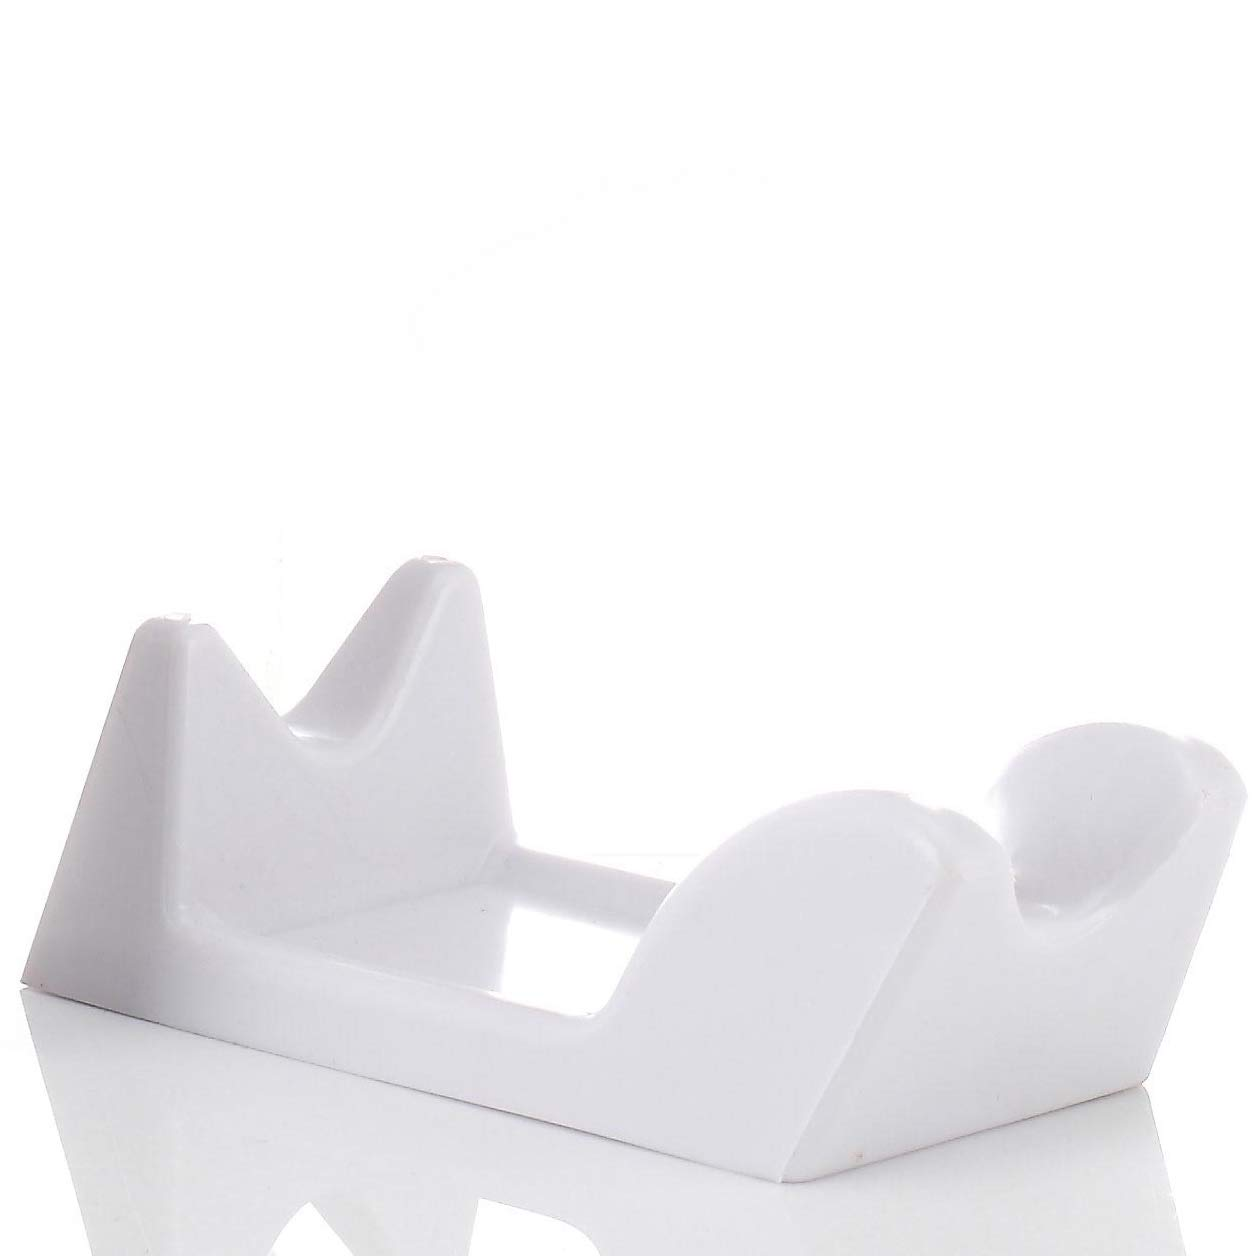 Miss Sweet Cradle Holder for Nail Drill (White)